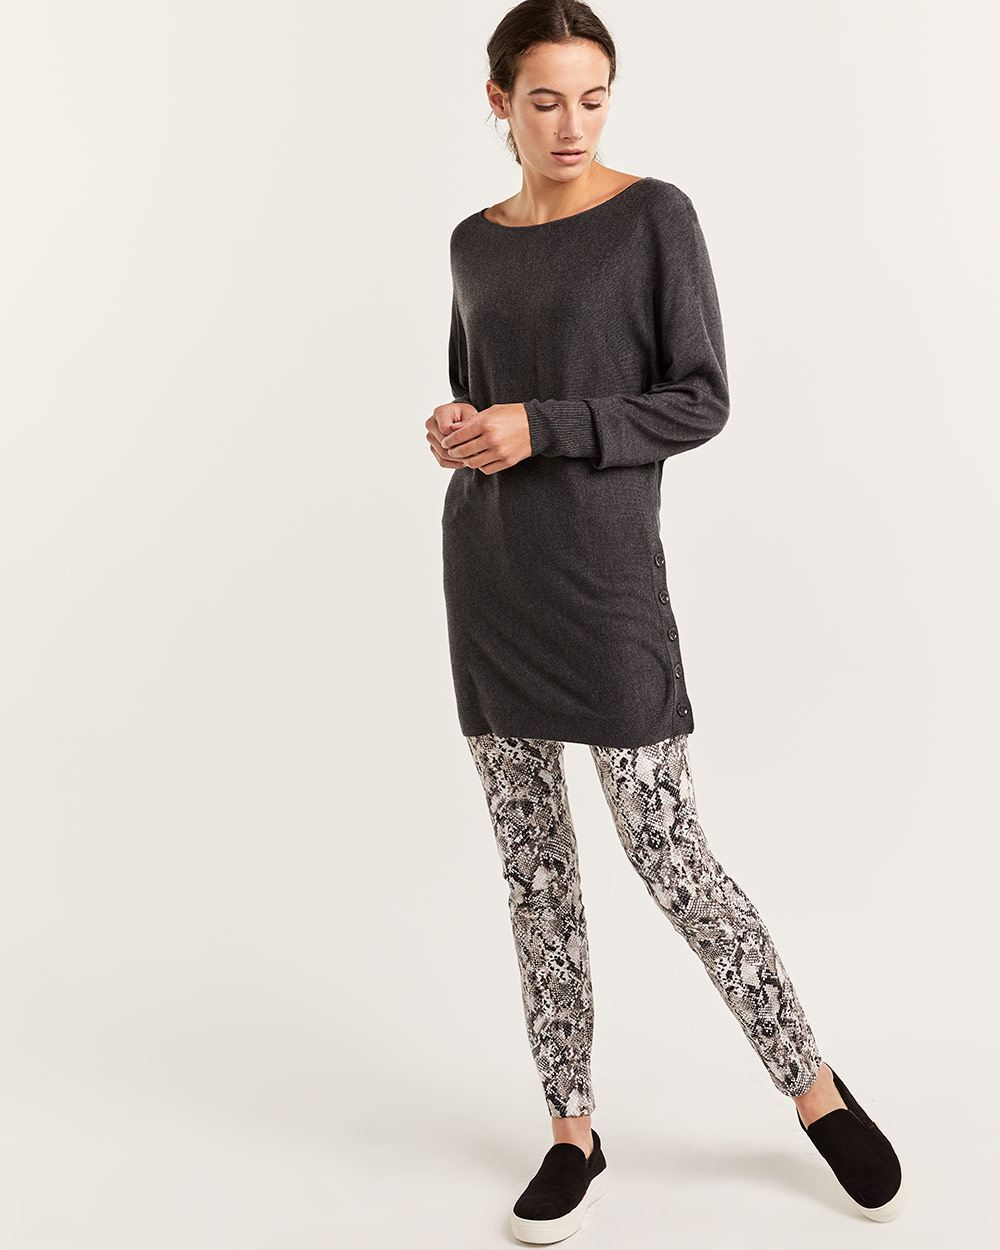 Boat Neck Tunic Sweater - Petite